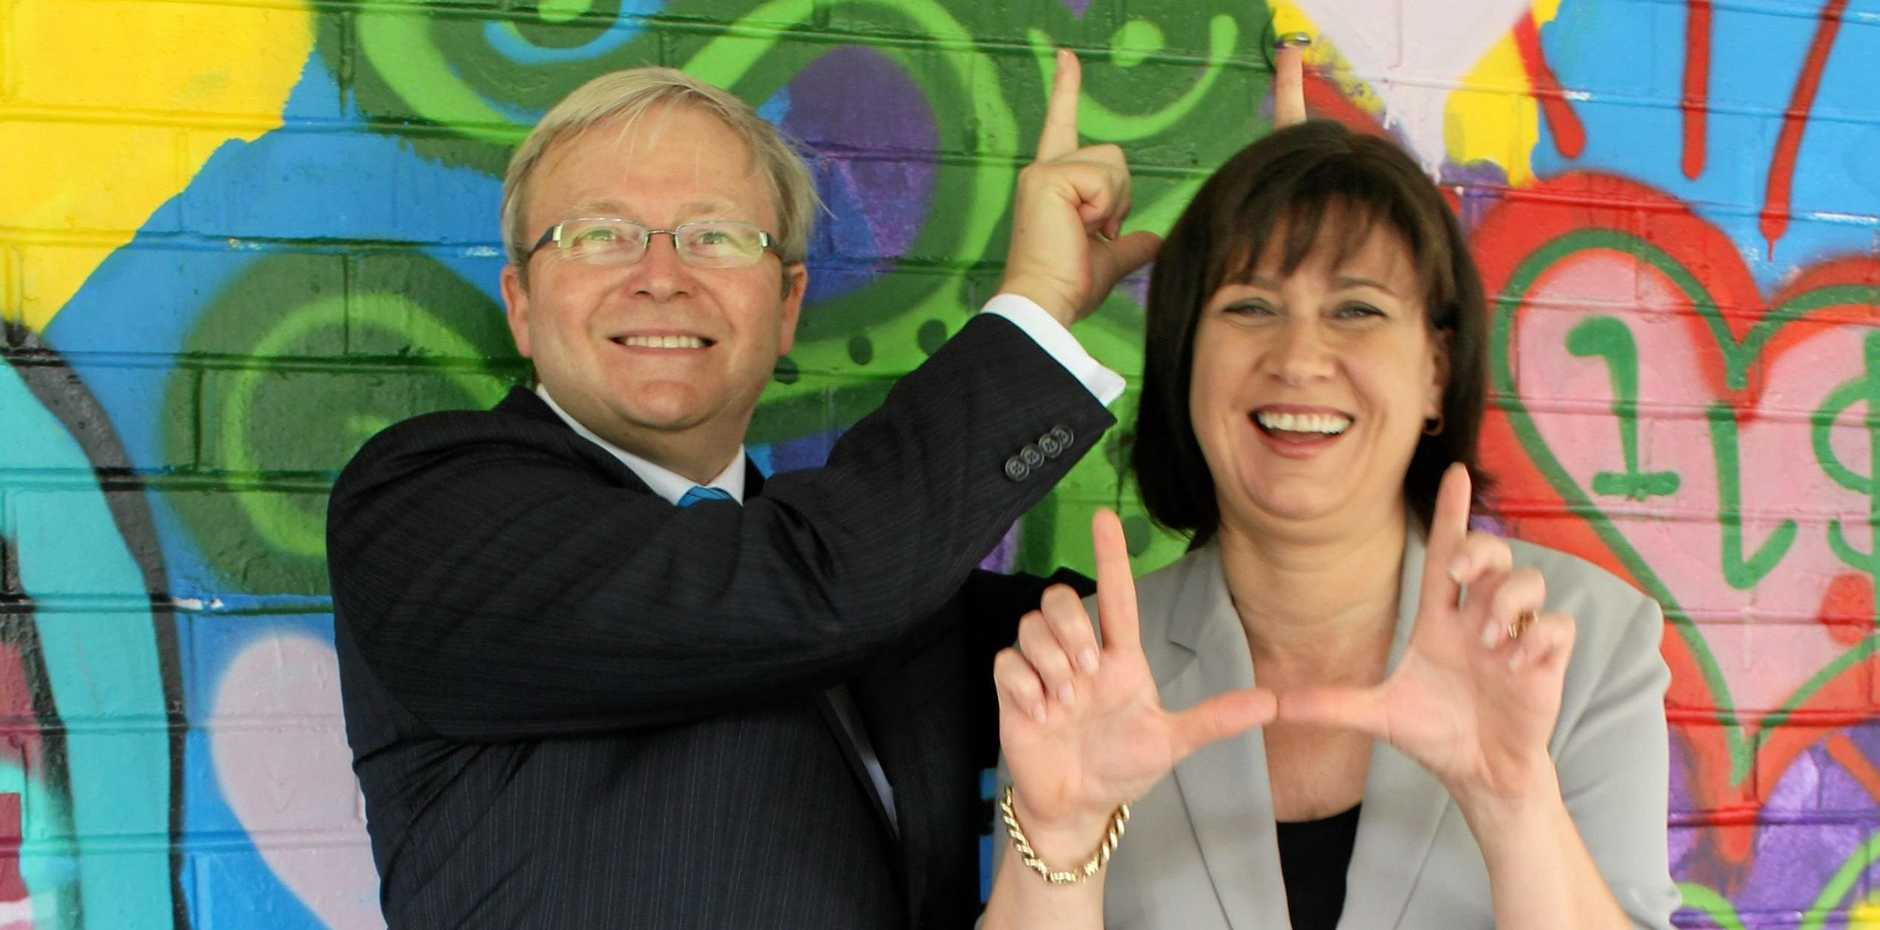 PAST ISSUES: Member for Richmond Justine Elliot and former Prime Minister Kevin Rudd in 2012.